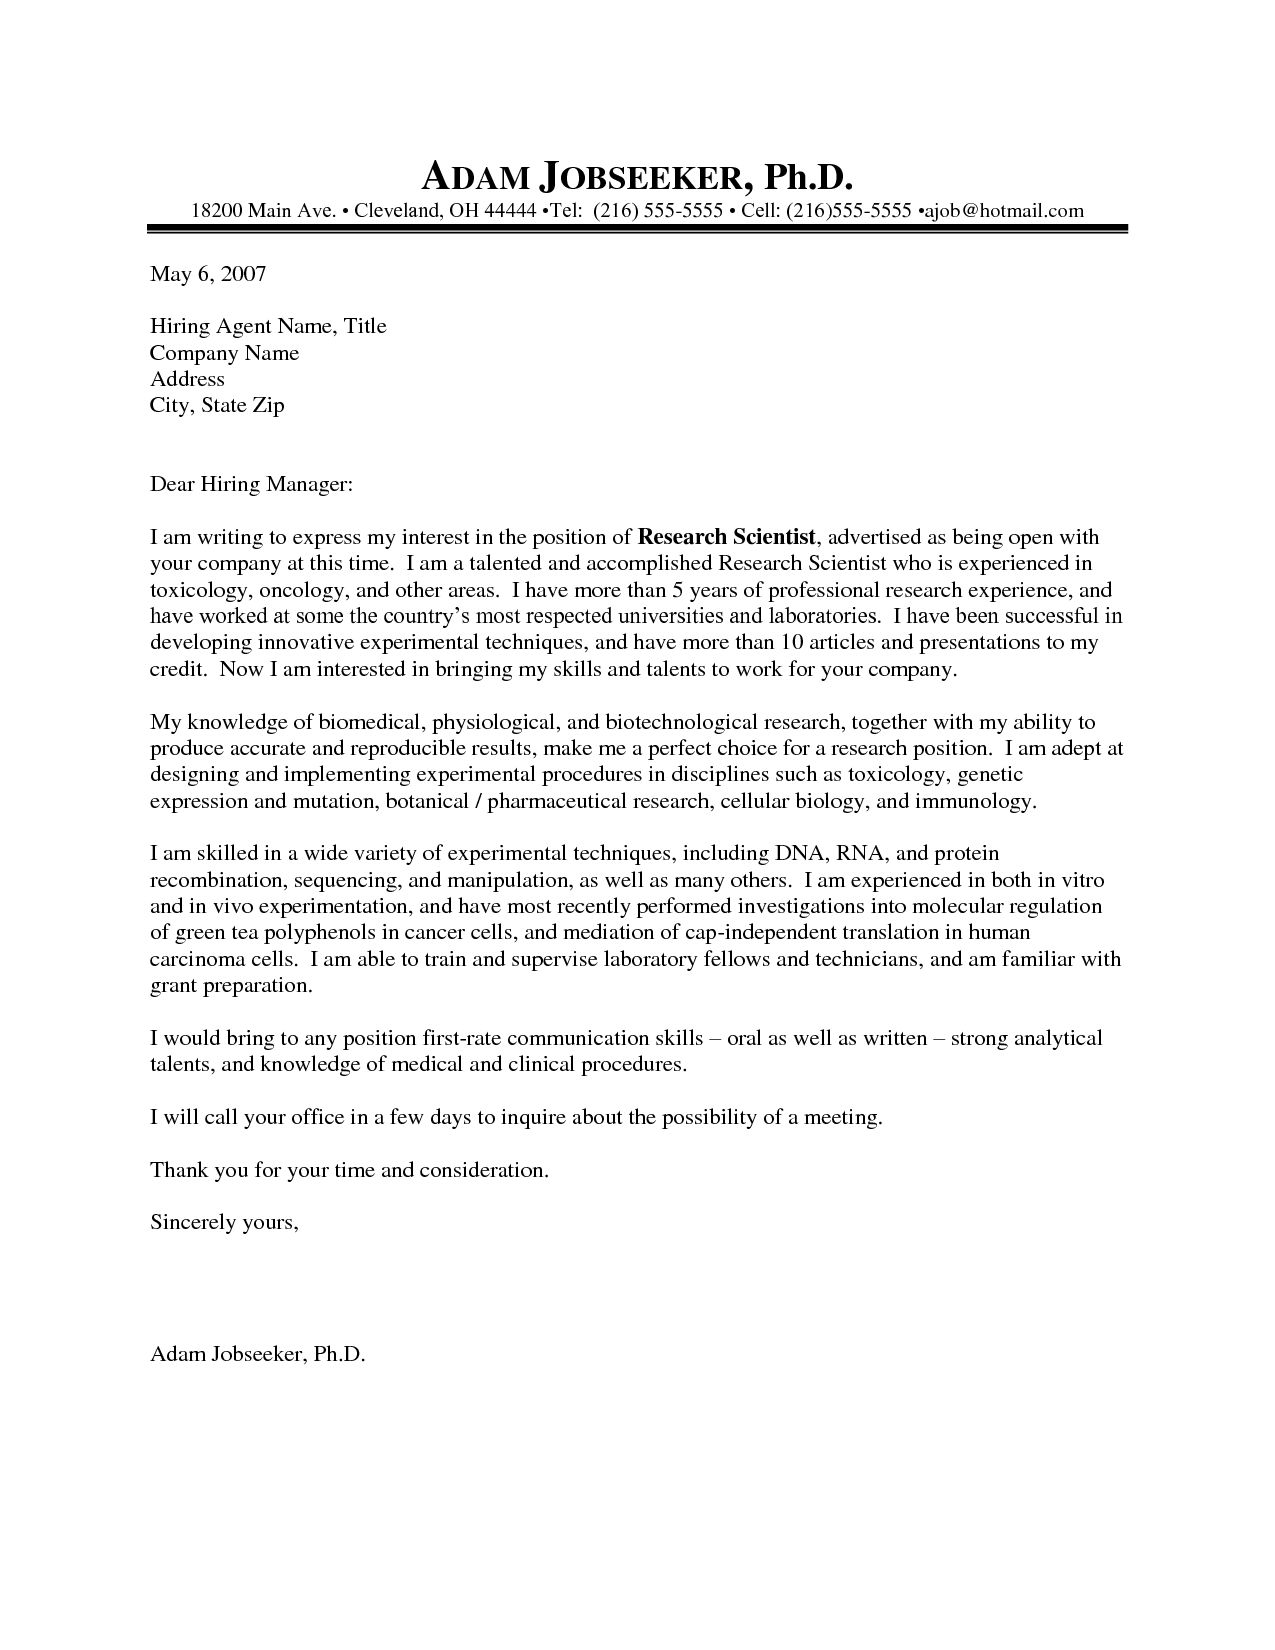 Writing A Cover Letter To A Company Ideas Of Molecular Biology Cover Letter Gallery Cover Letter